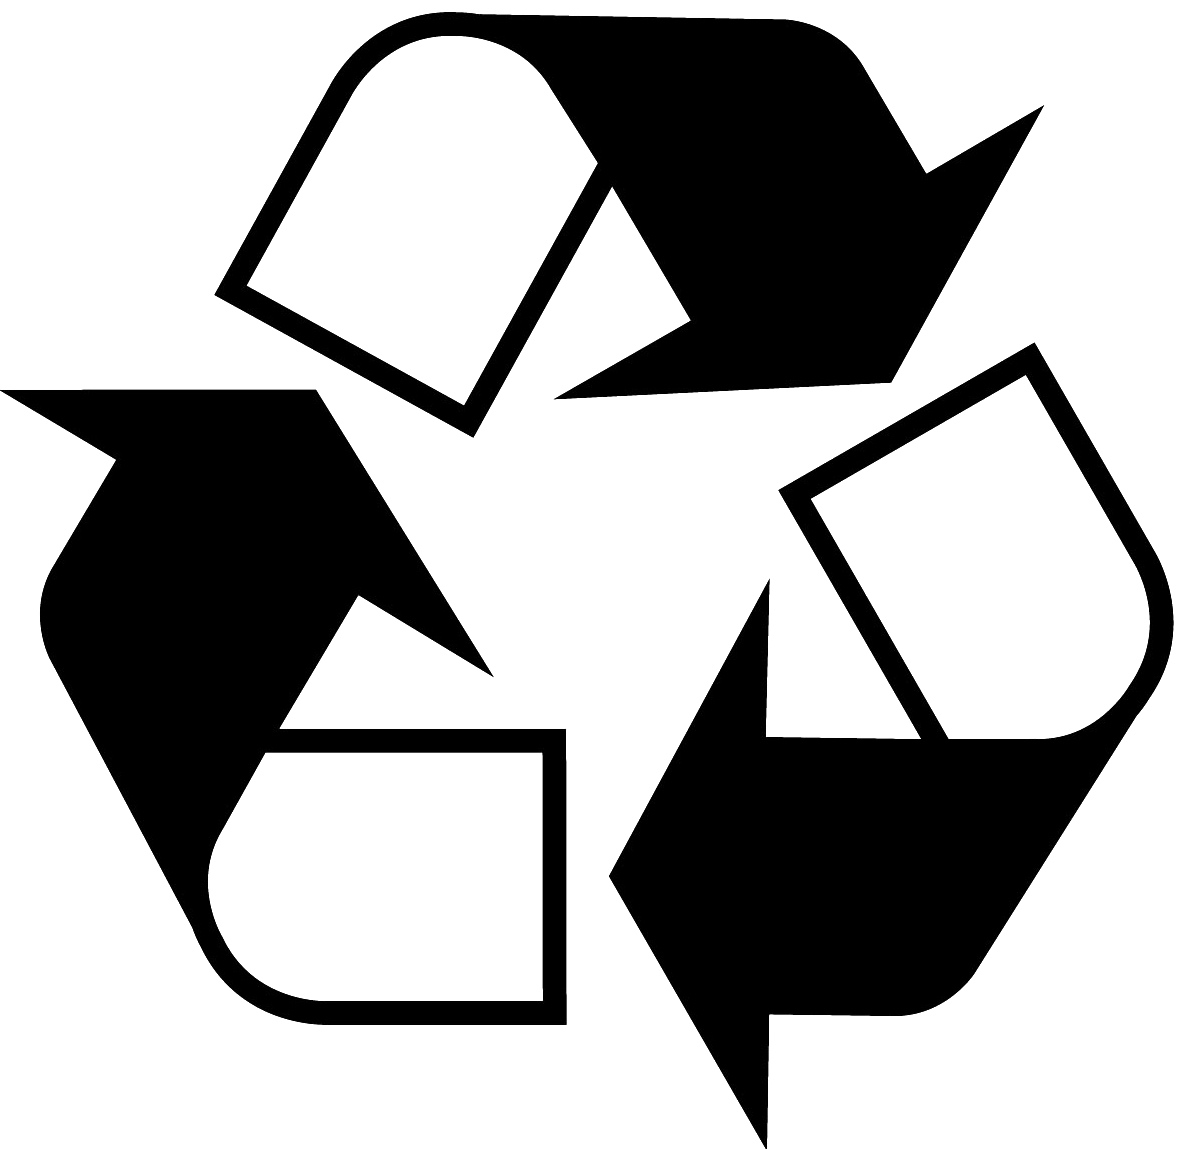 Recycling Symbol Clipart.